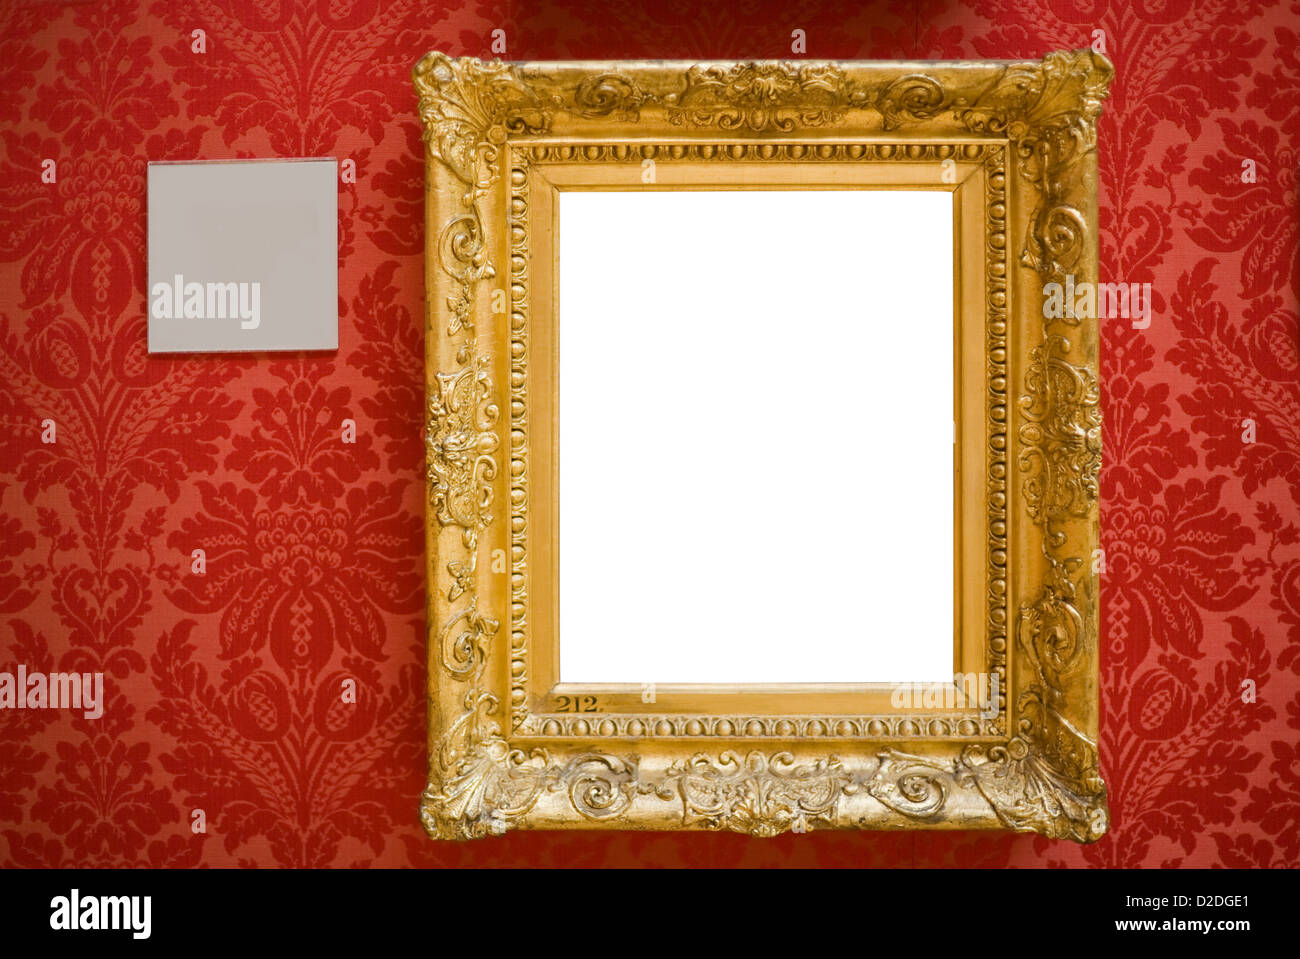 ornate gold frame hanging on an art gallery wall accompanied by a blank description label